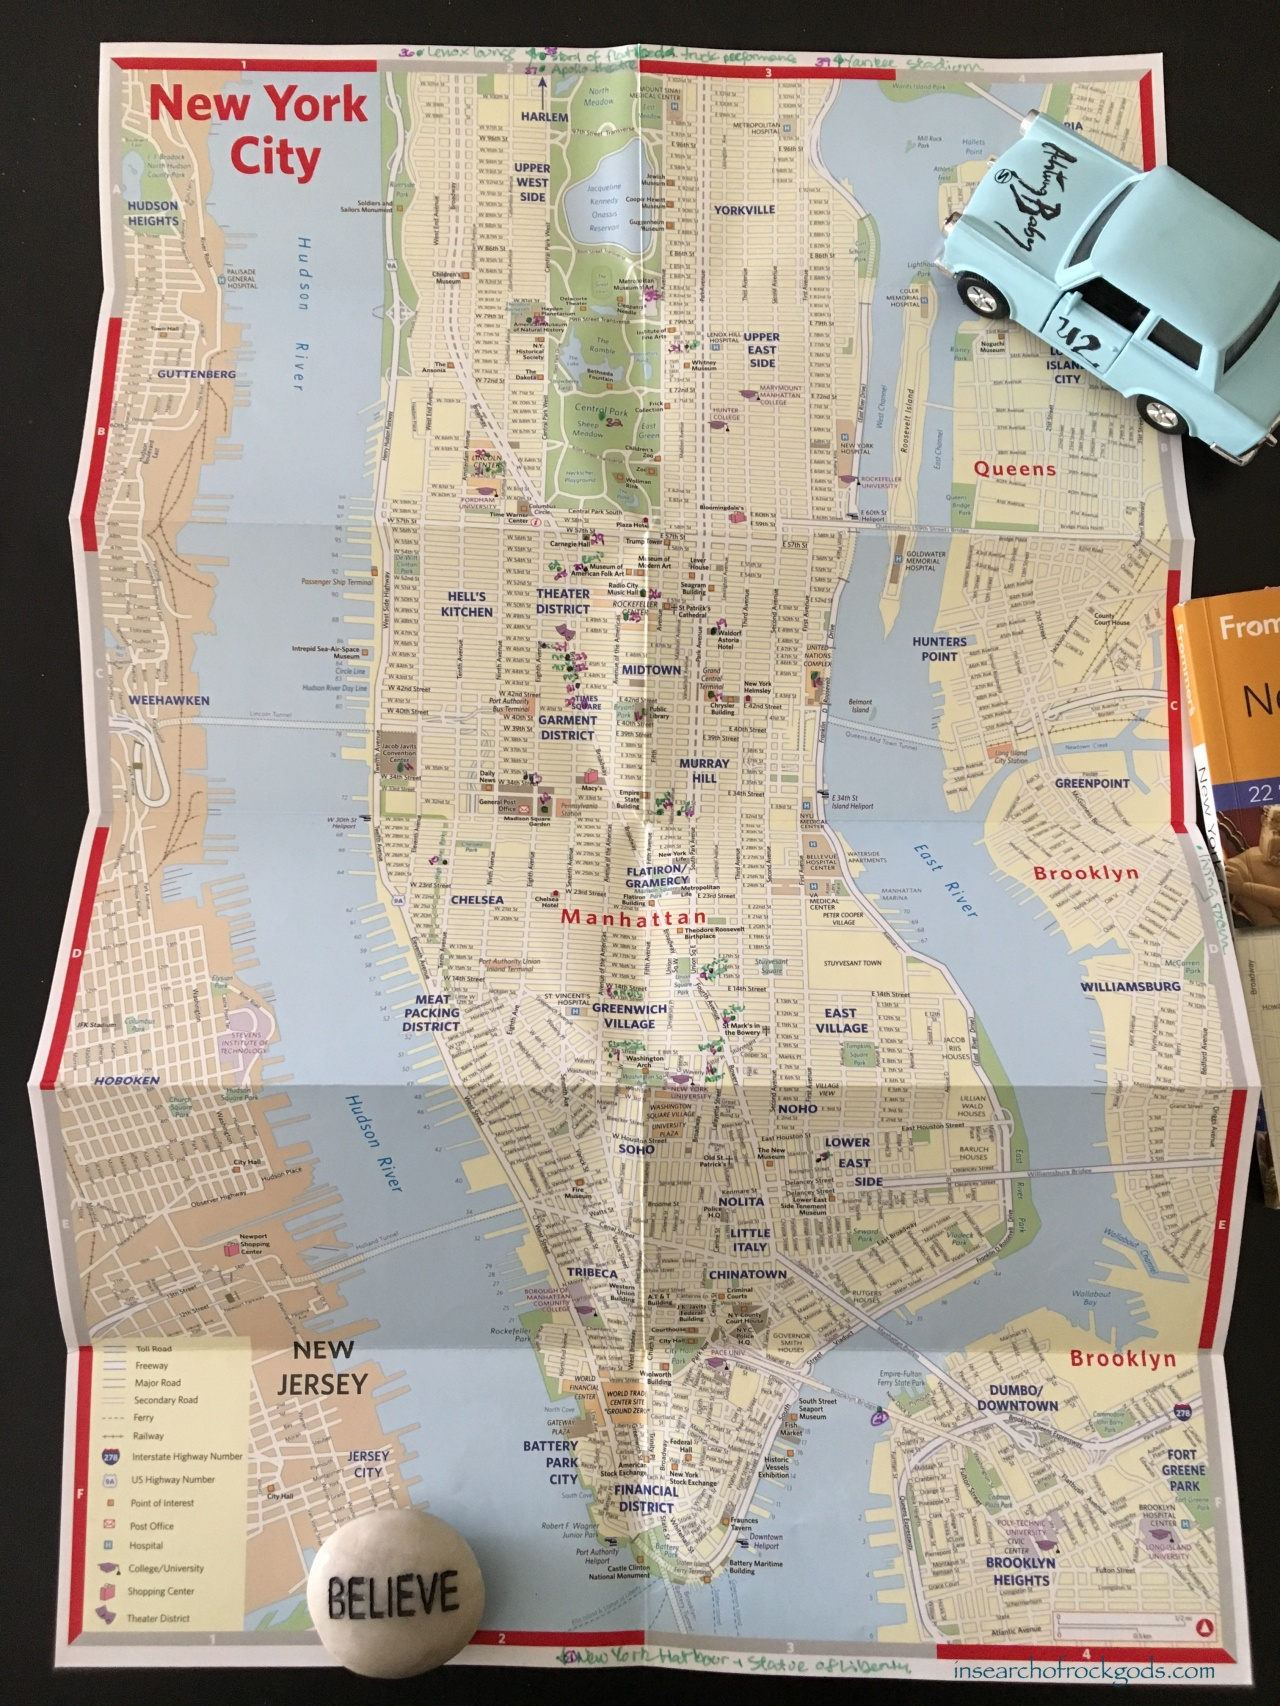 Map of U2 sites in New York City